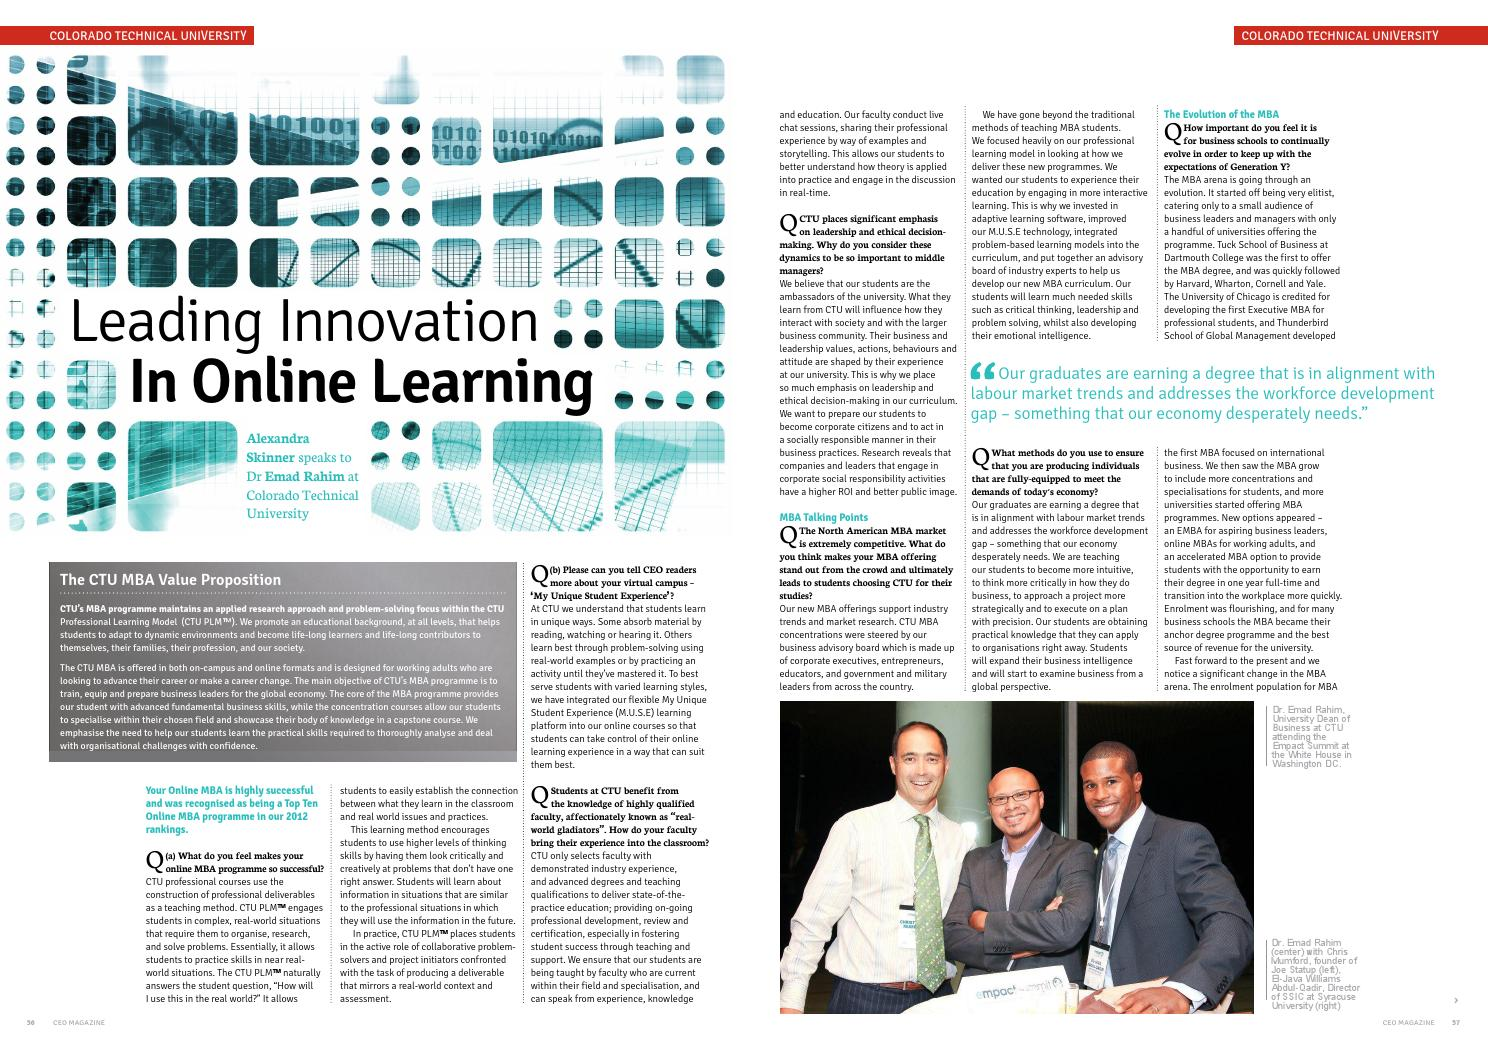 Innovation in Online Education with Emad Rahim by Alexandra